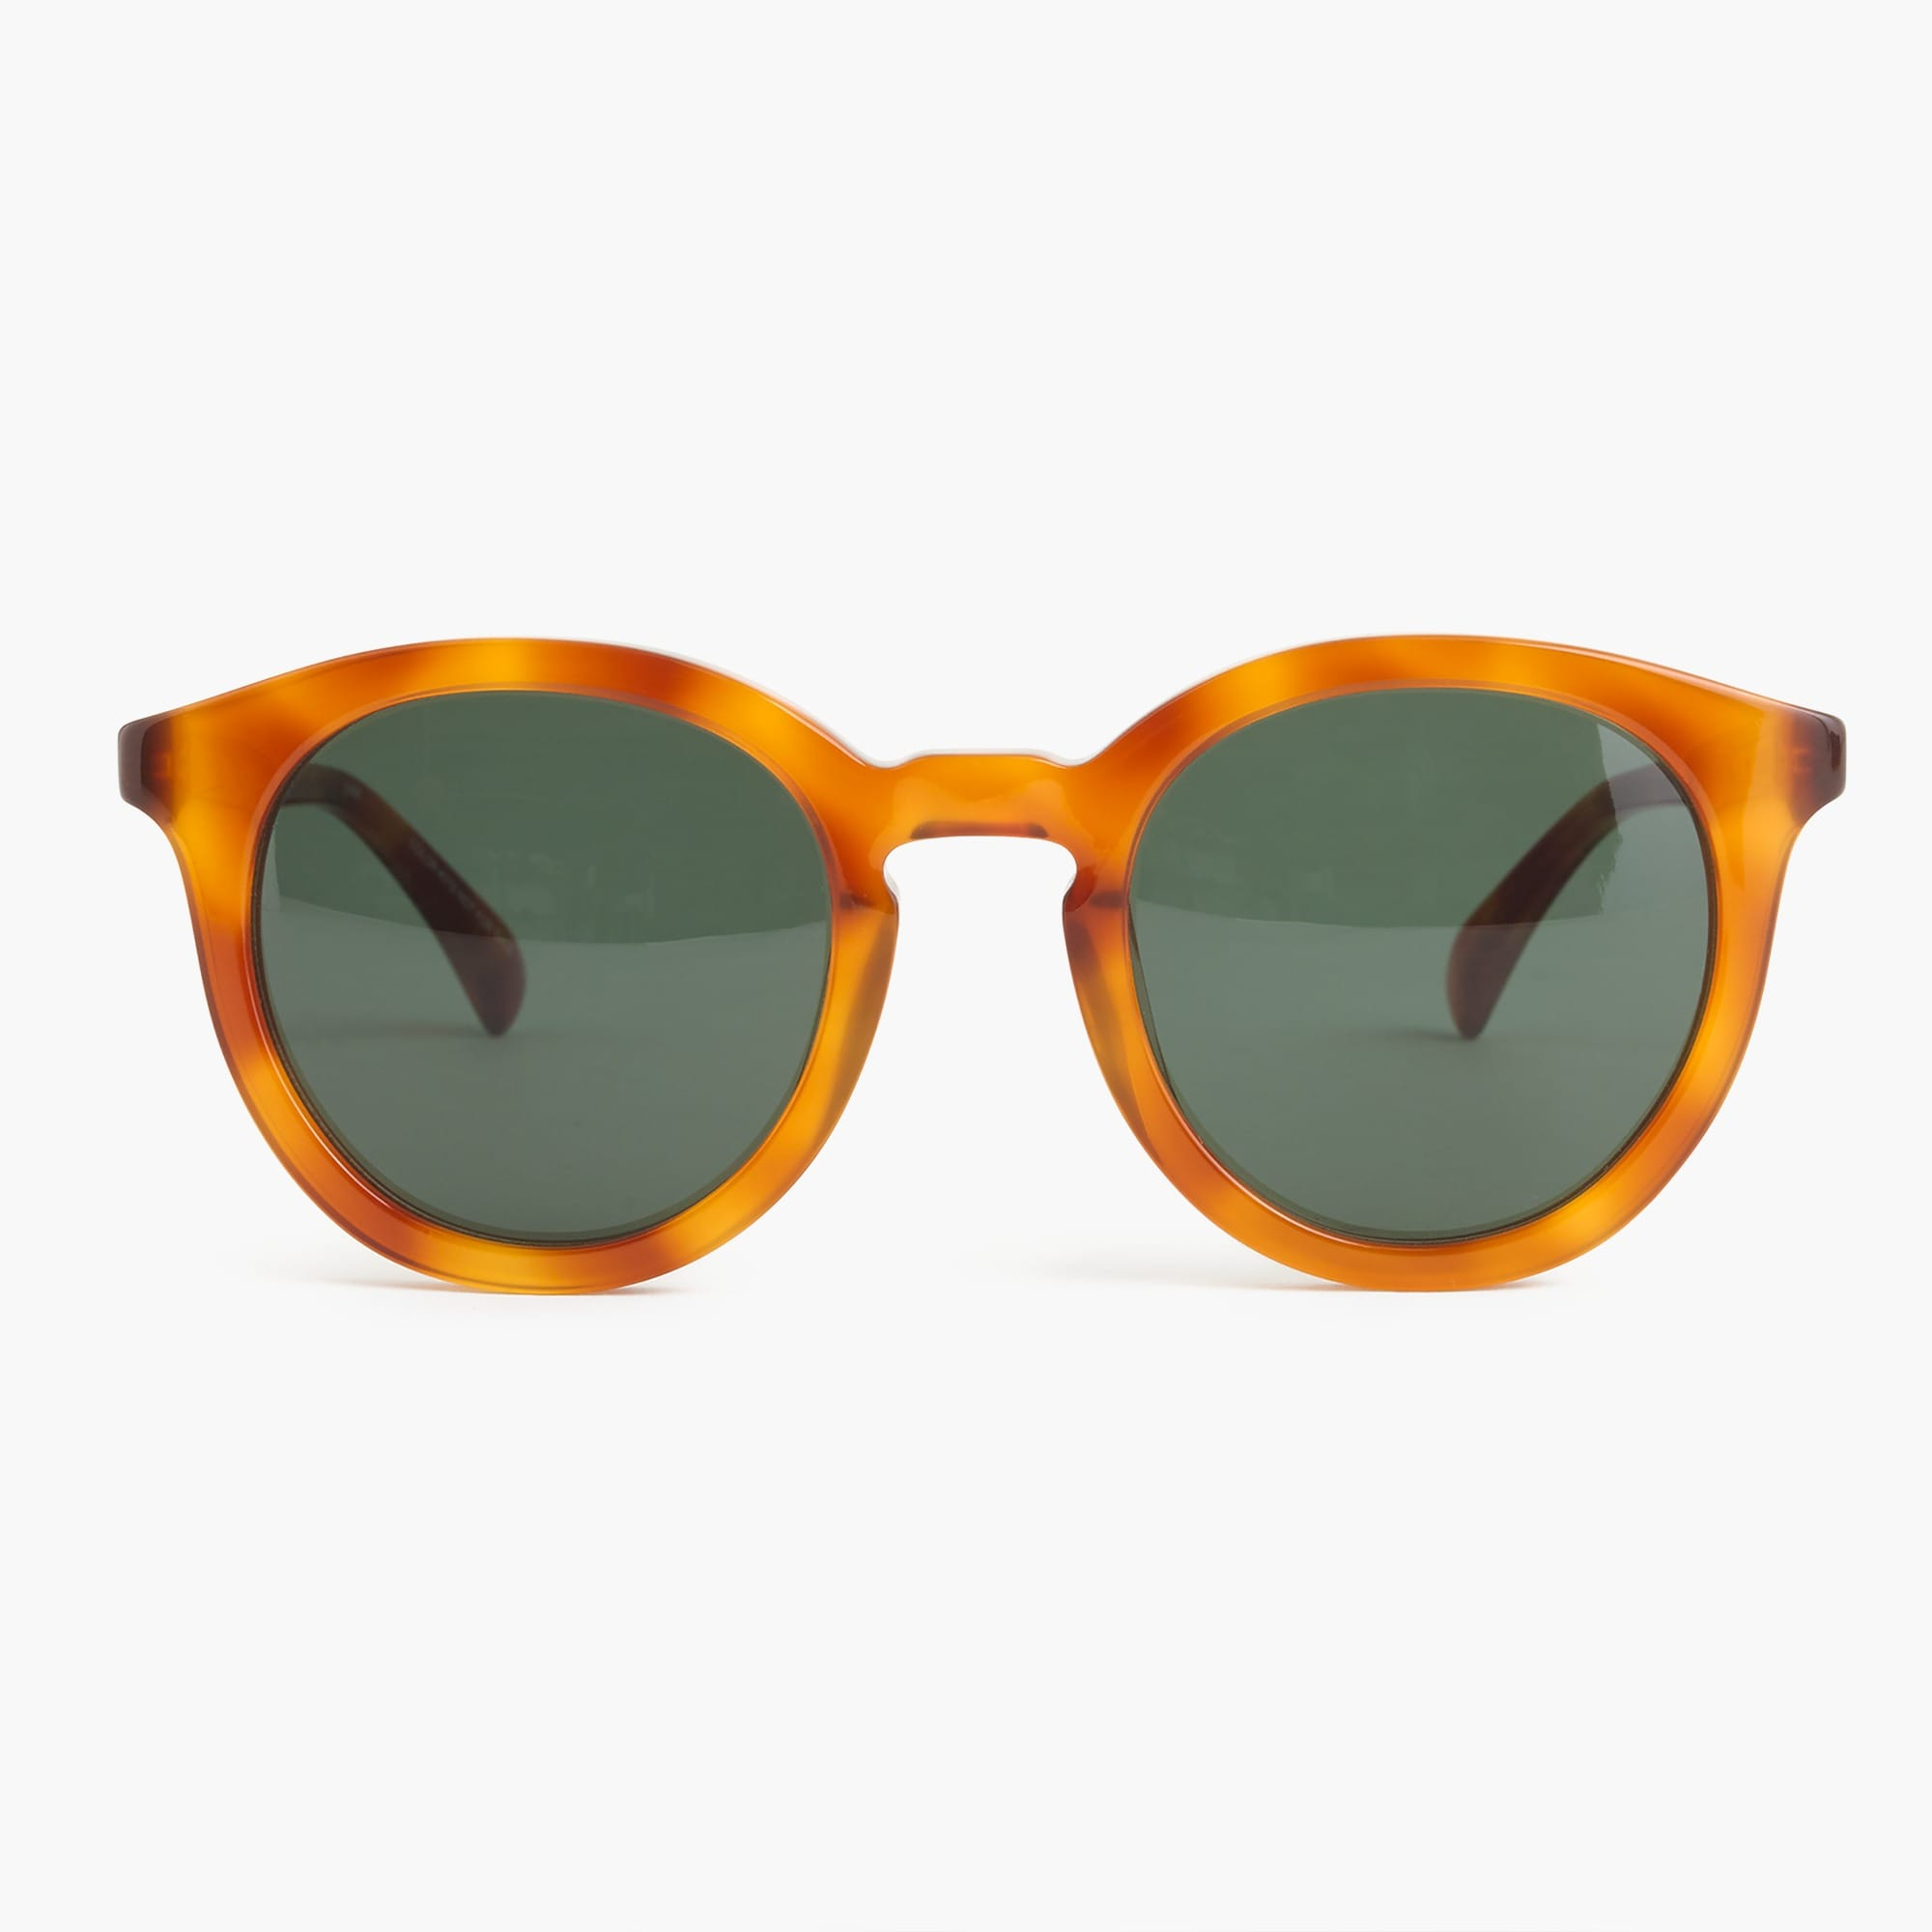 frankie sunglasses : men the prep shoppe